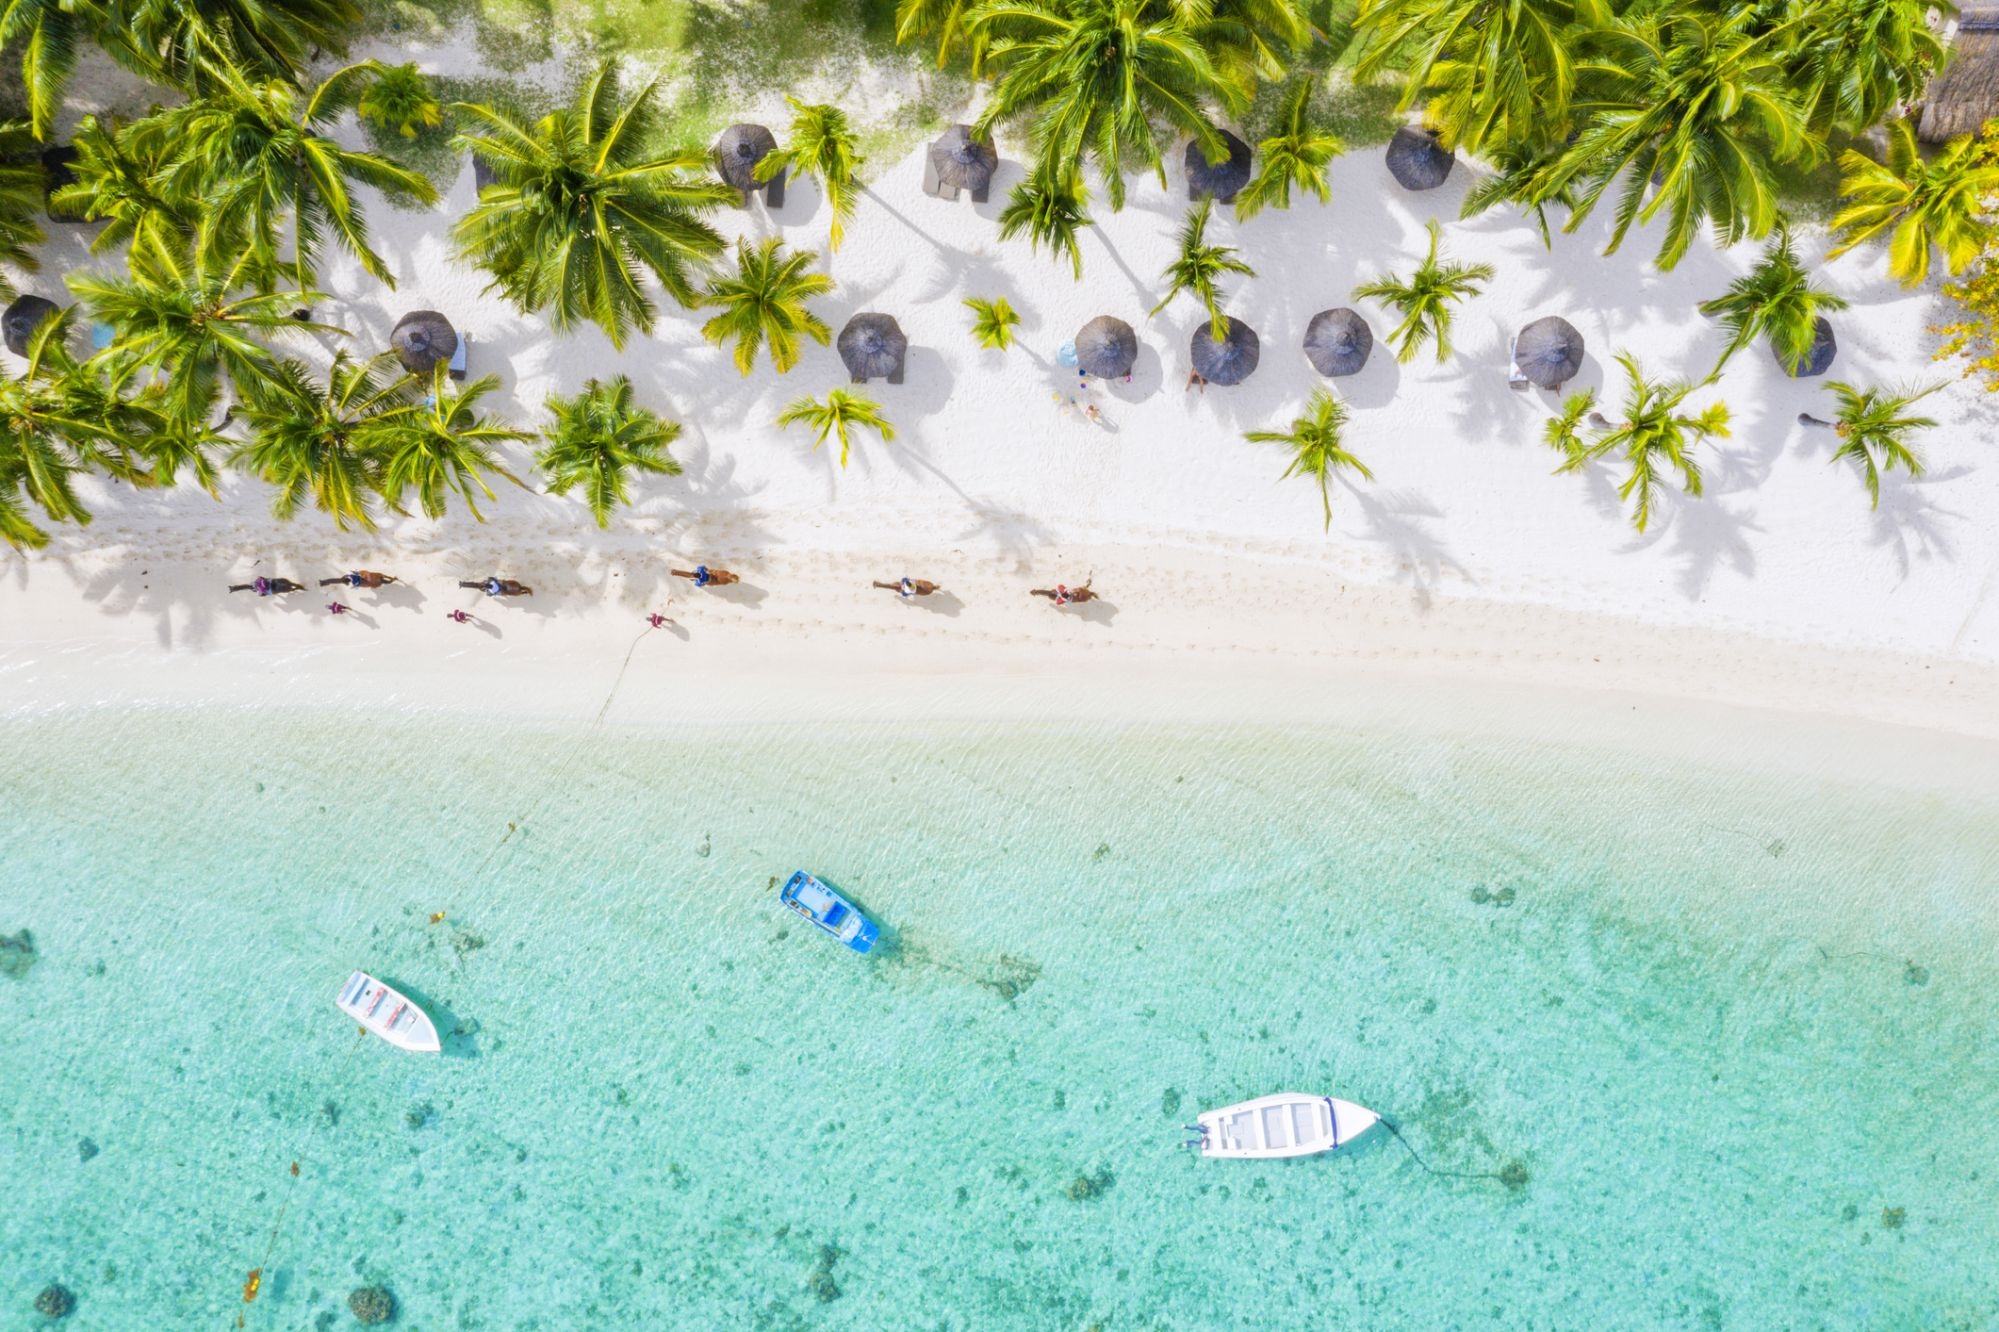 People enjoying riding horses riding on tropical sand beach facing the lagoon, aerial view, Indian Ocean, Mauritius Island